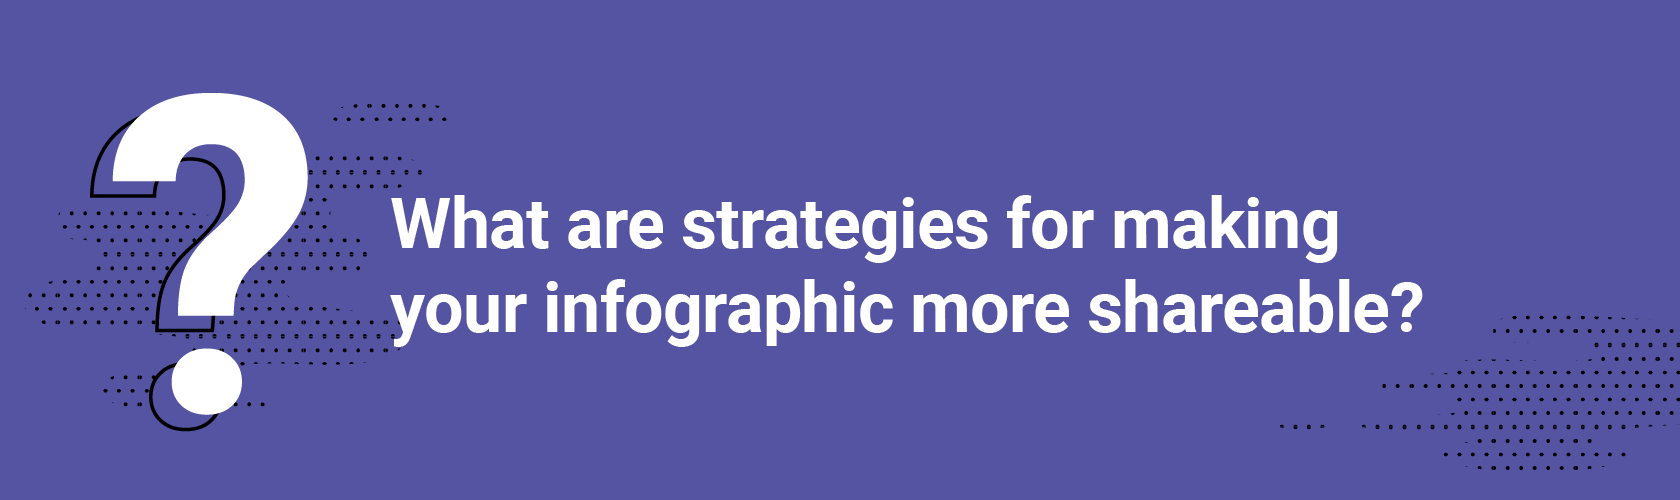 What are strategies for making your infographic more shareable?